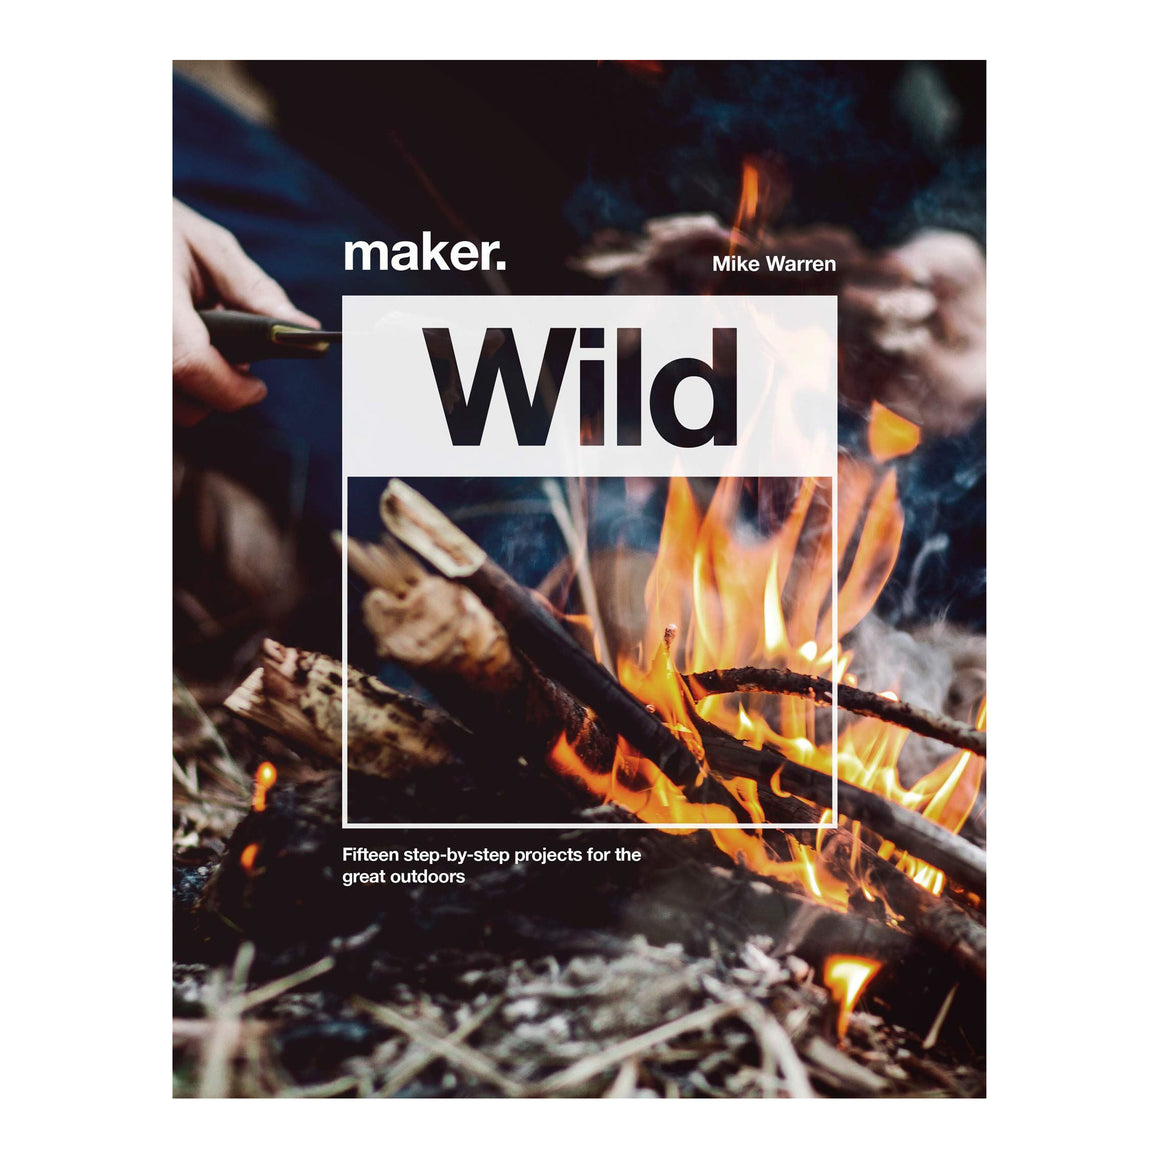 Maker Wild by Mike Warren